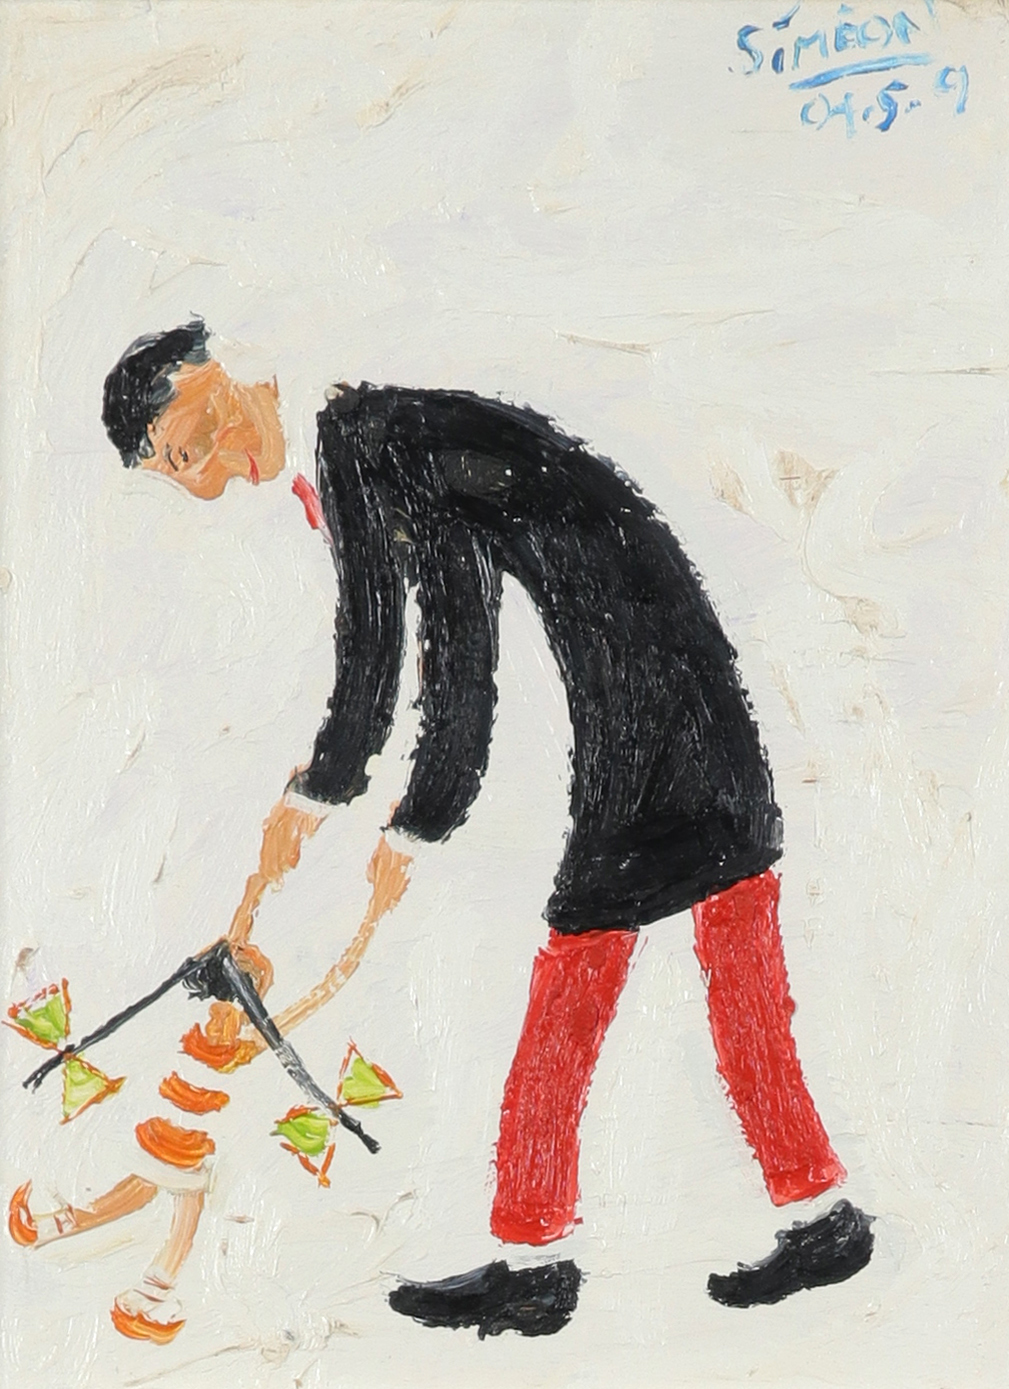 ‡Simeon Stafford (b.1956) Ruby and Dad Signed and dated Simeon/04.5.9 (upper right) and